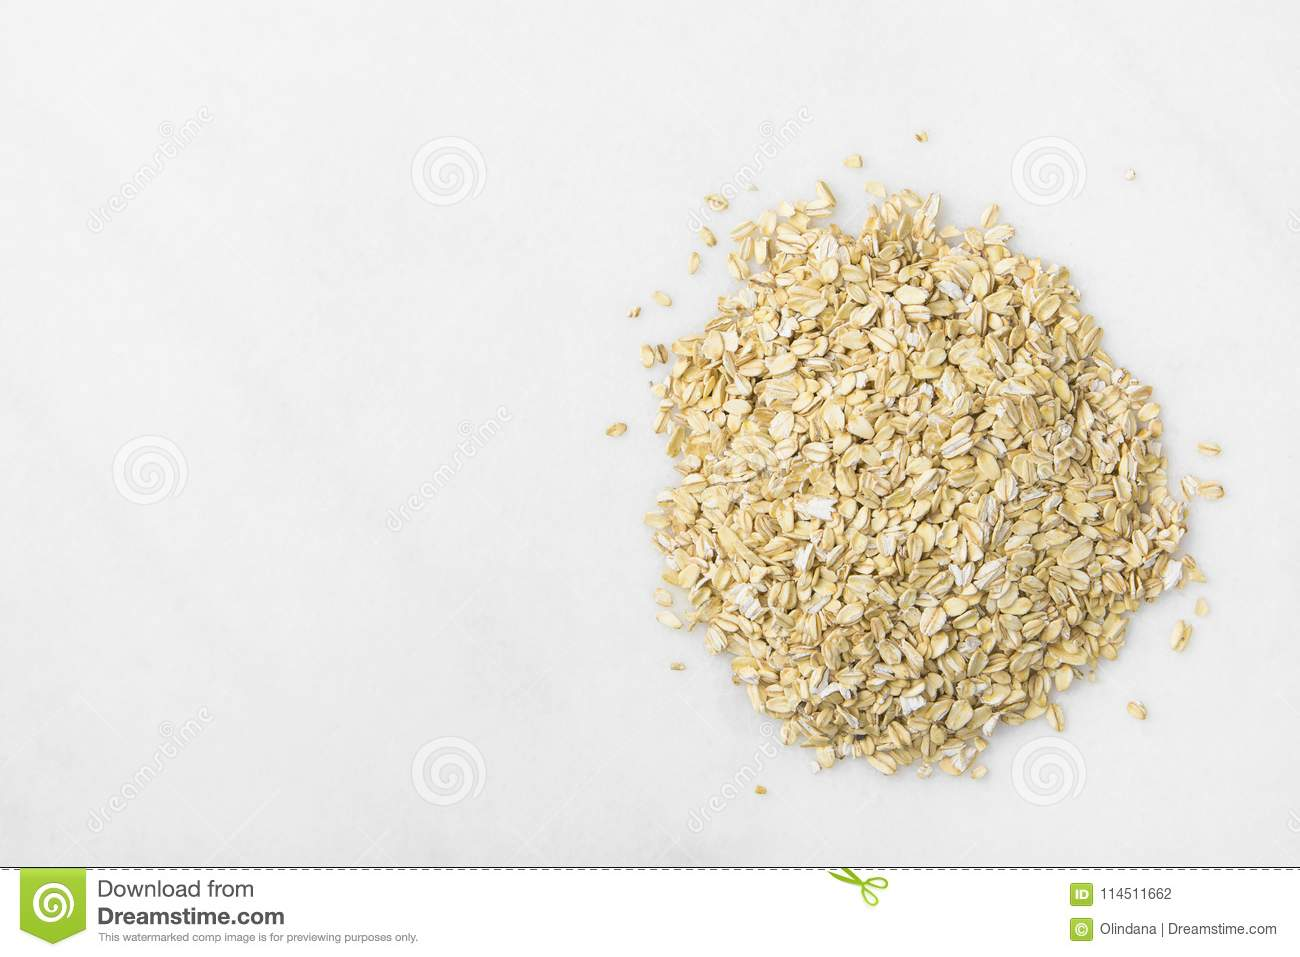 Heap of Rolled Oats Spilled on White Marble Stone Table. Healthy Lifestyle Nutrition Fiber Source Concept